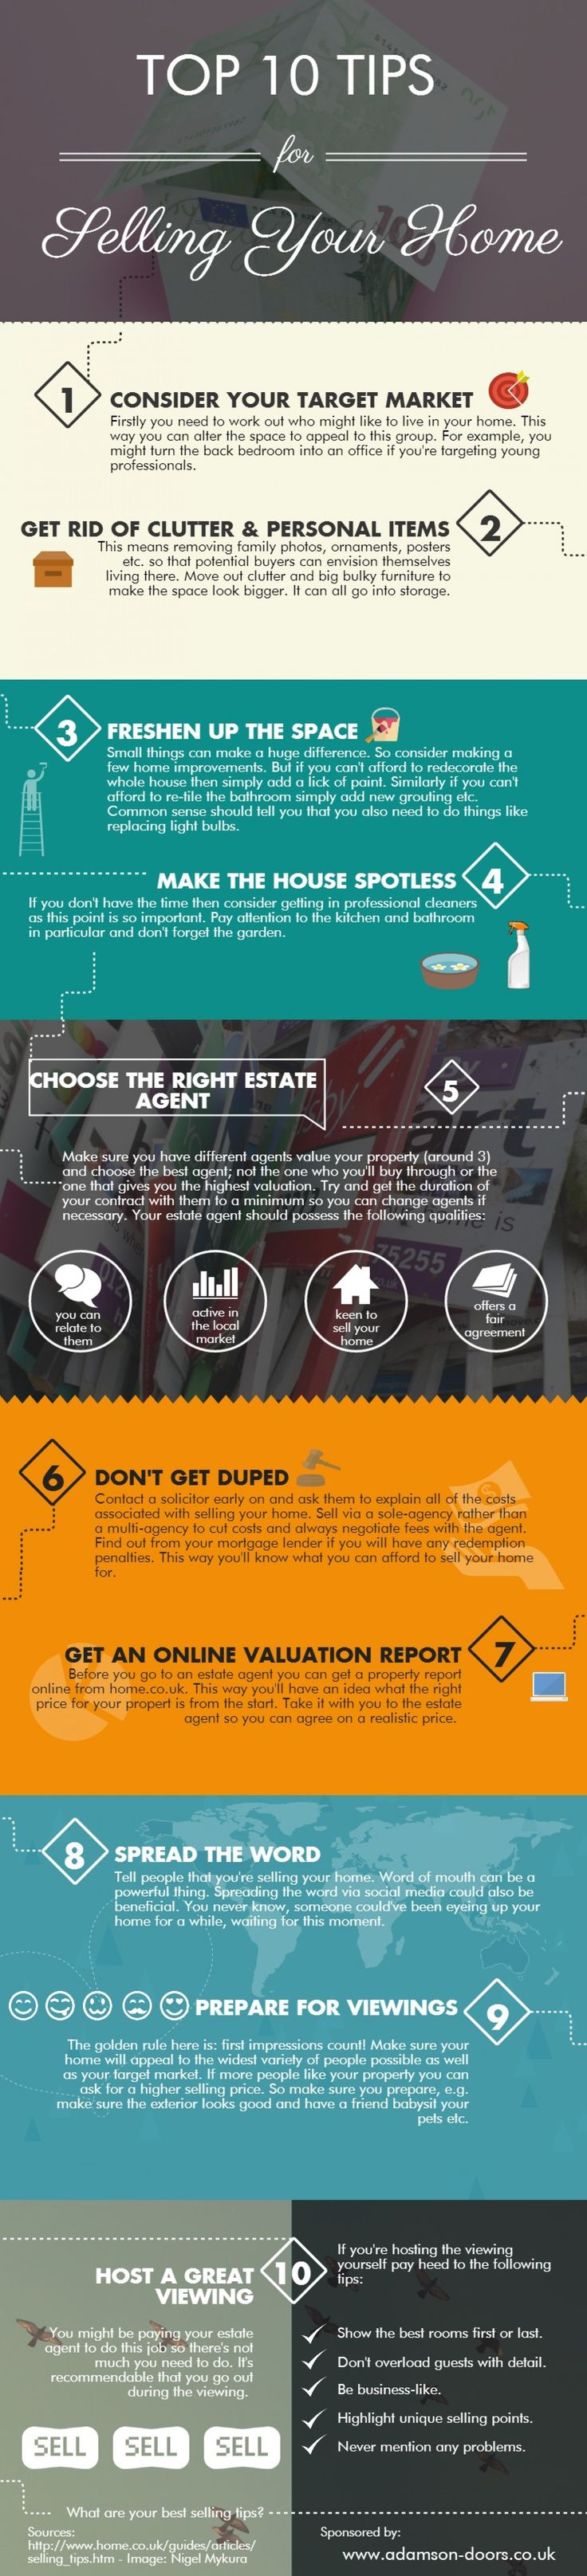 From tips on how to choose the right estate agent to preparing your home for a viewing, this infographic from Adamson Doors provides a truly comprehensive guide to selling your home.